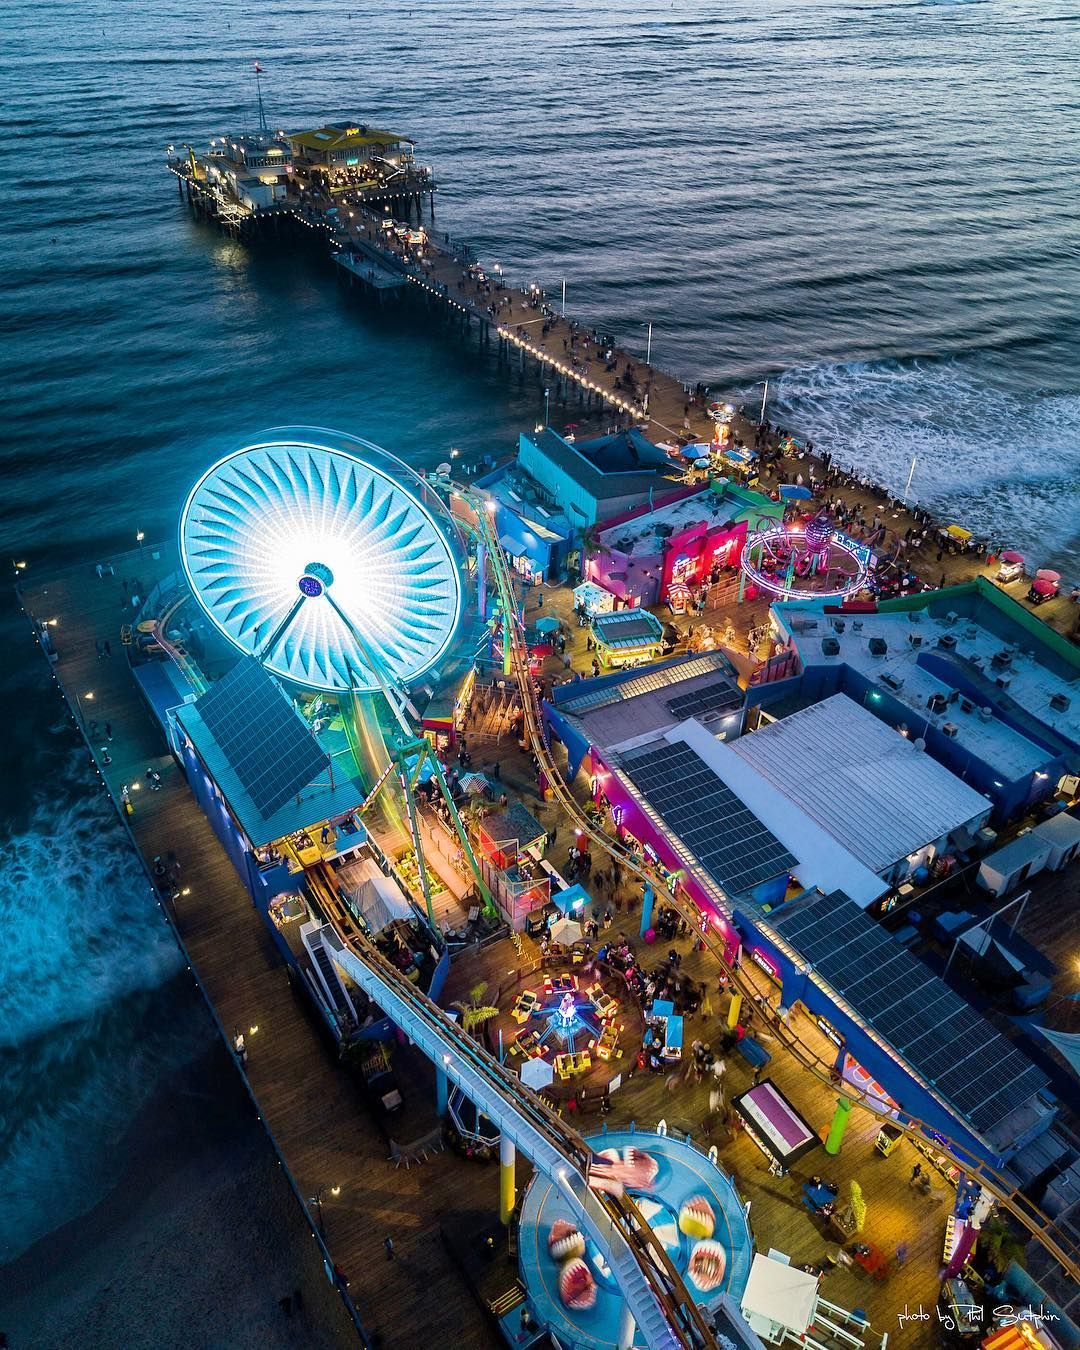 The Peir: Drone Photography Here's Another Shot Of The Santa Monica